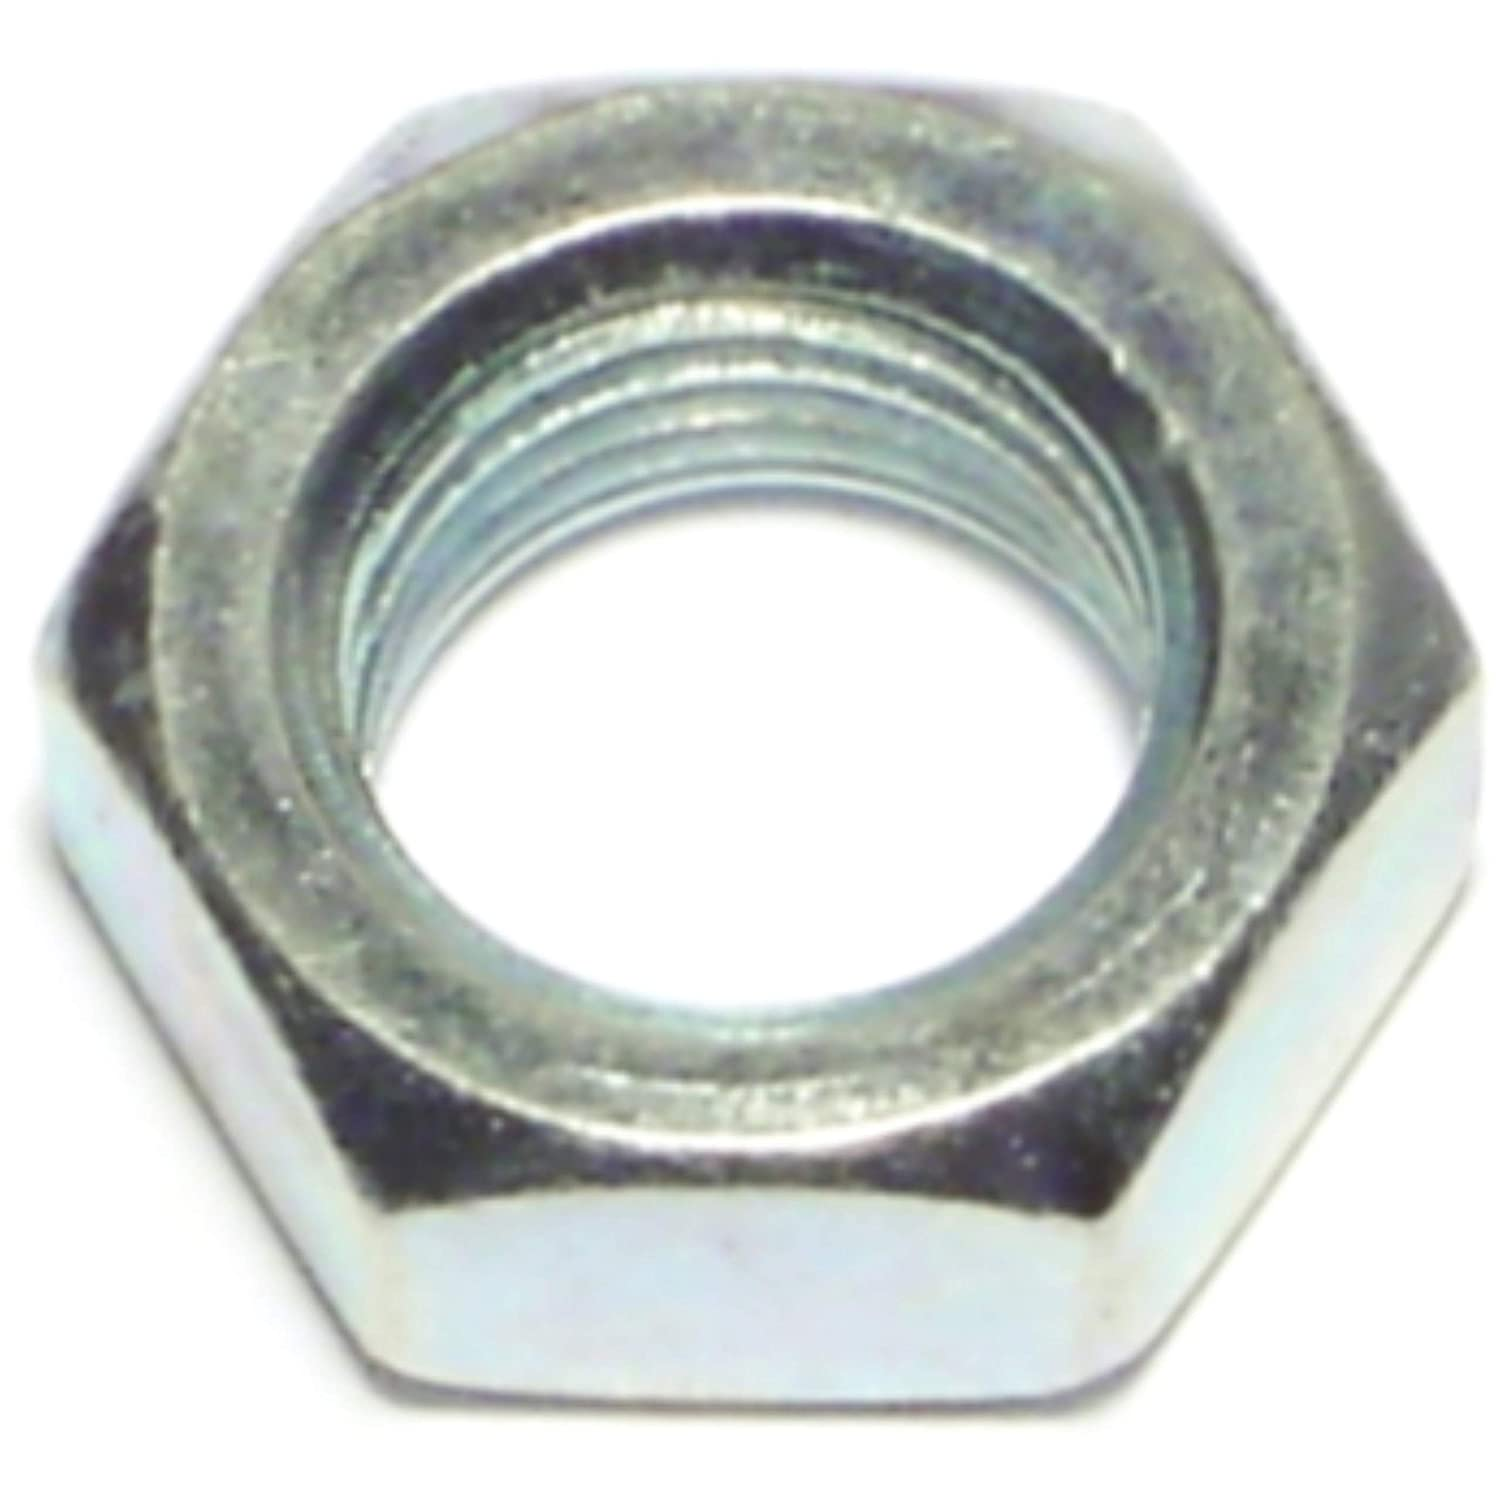 Hard-to-Find Fastener 014973259310 Fine Hex Jam Nuts, 7/16-20-Inch